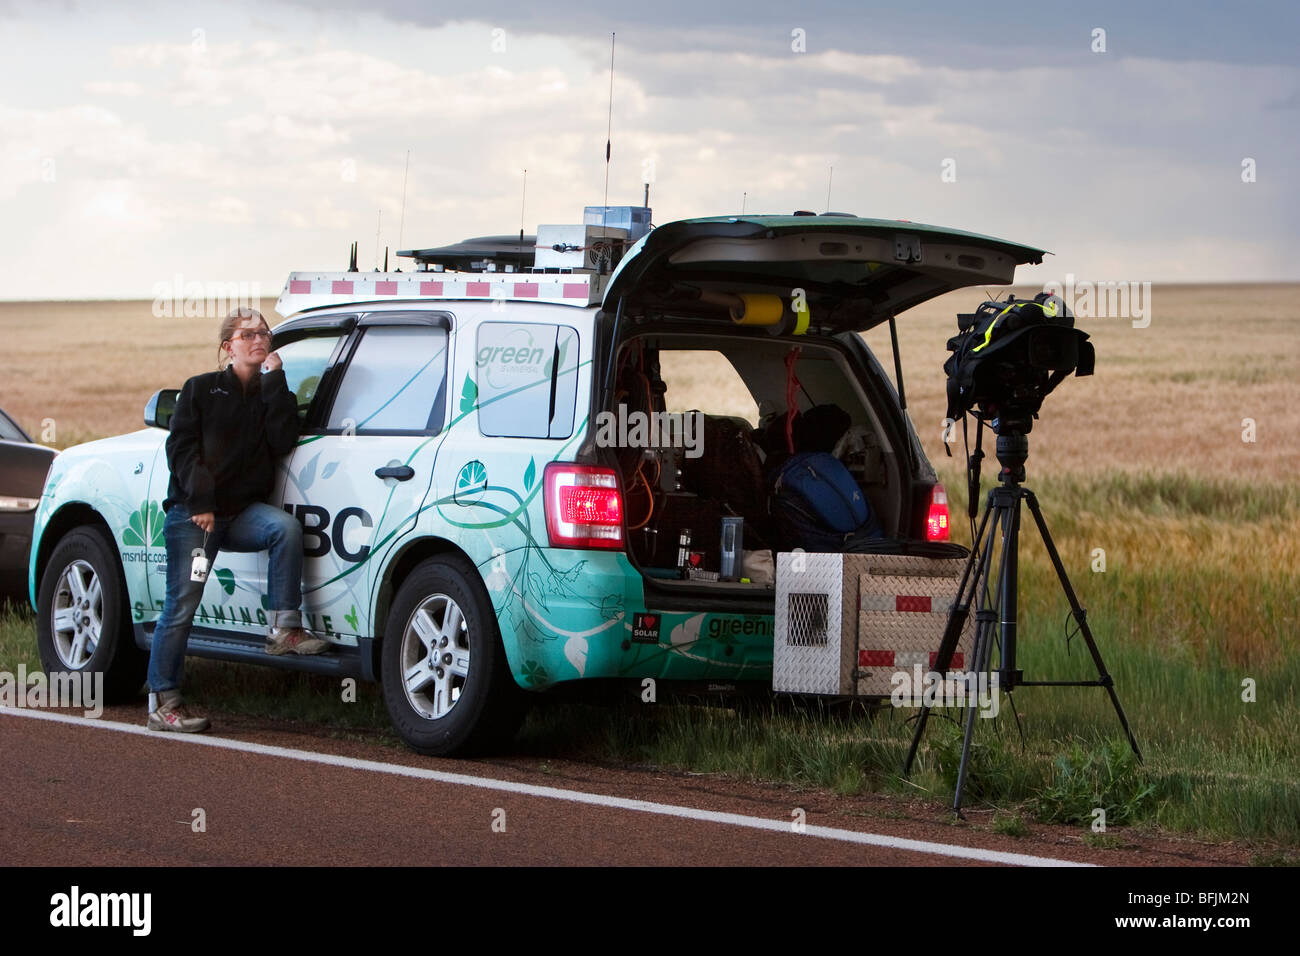 Weather Channel reporter Katy Tur in western Kansas, USA, June 10, 2009. - Stock Image